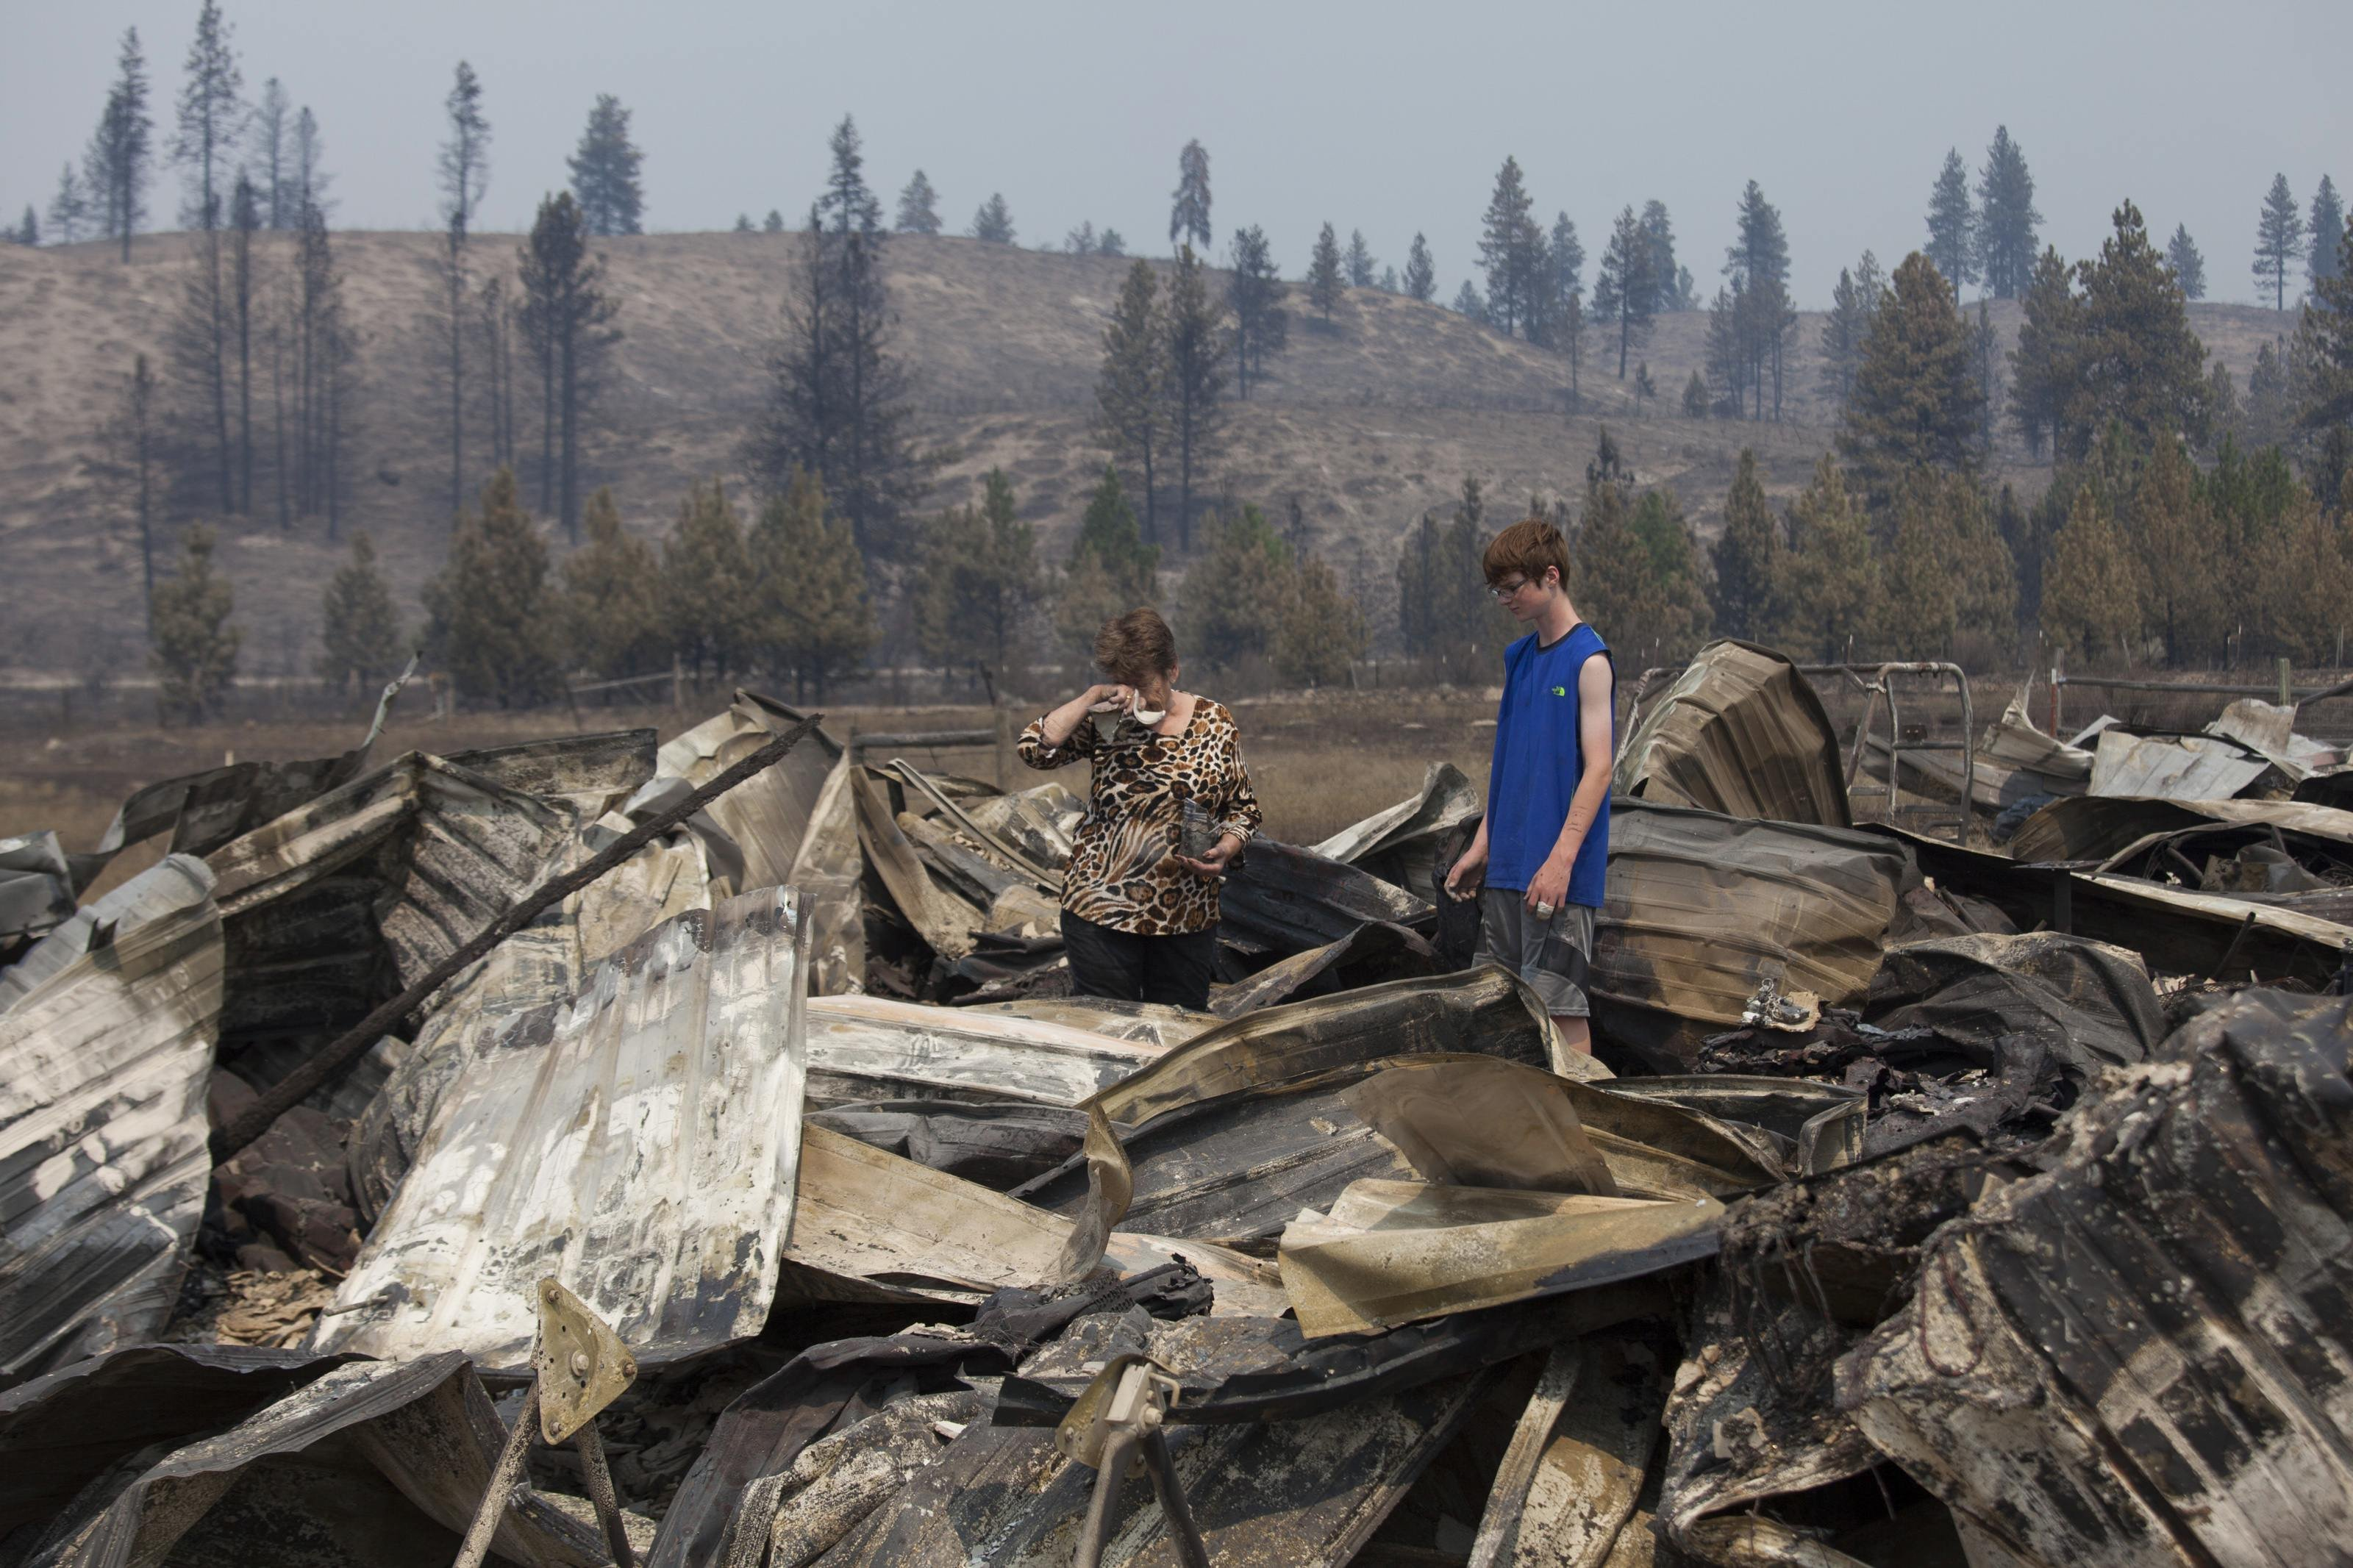 Mim Morris  wipes her forehead as she looks through the remnants of her home, which was destroyed by the Carlton Complex Fire, as her grandson, Joel Lafer, 14, joins her near Malott, Washington on July 20, 2014.